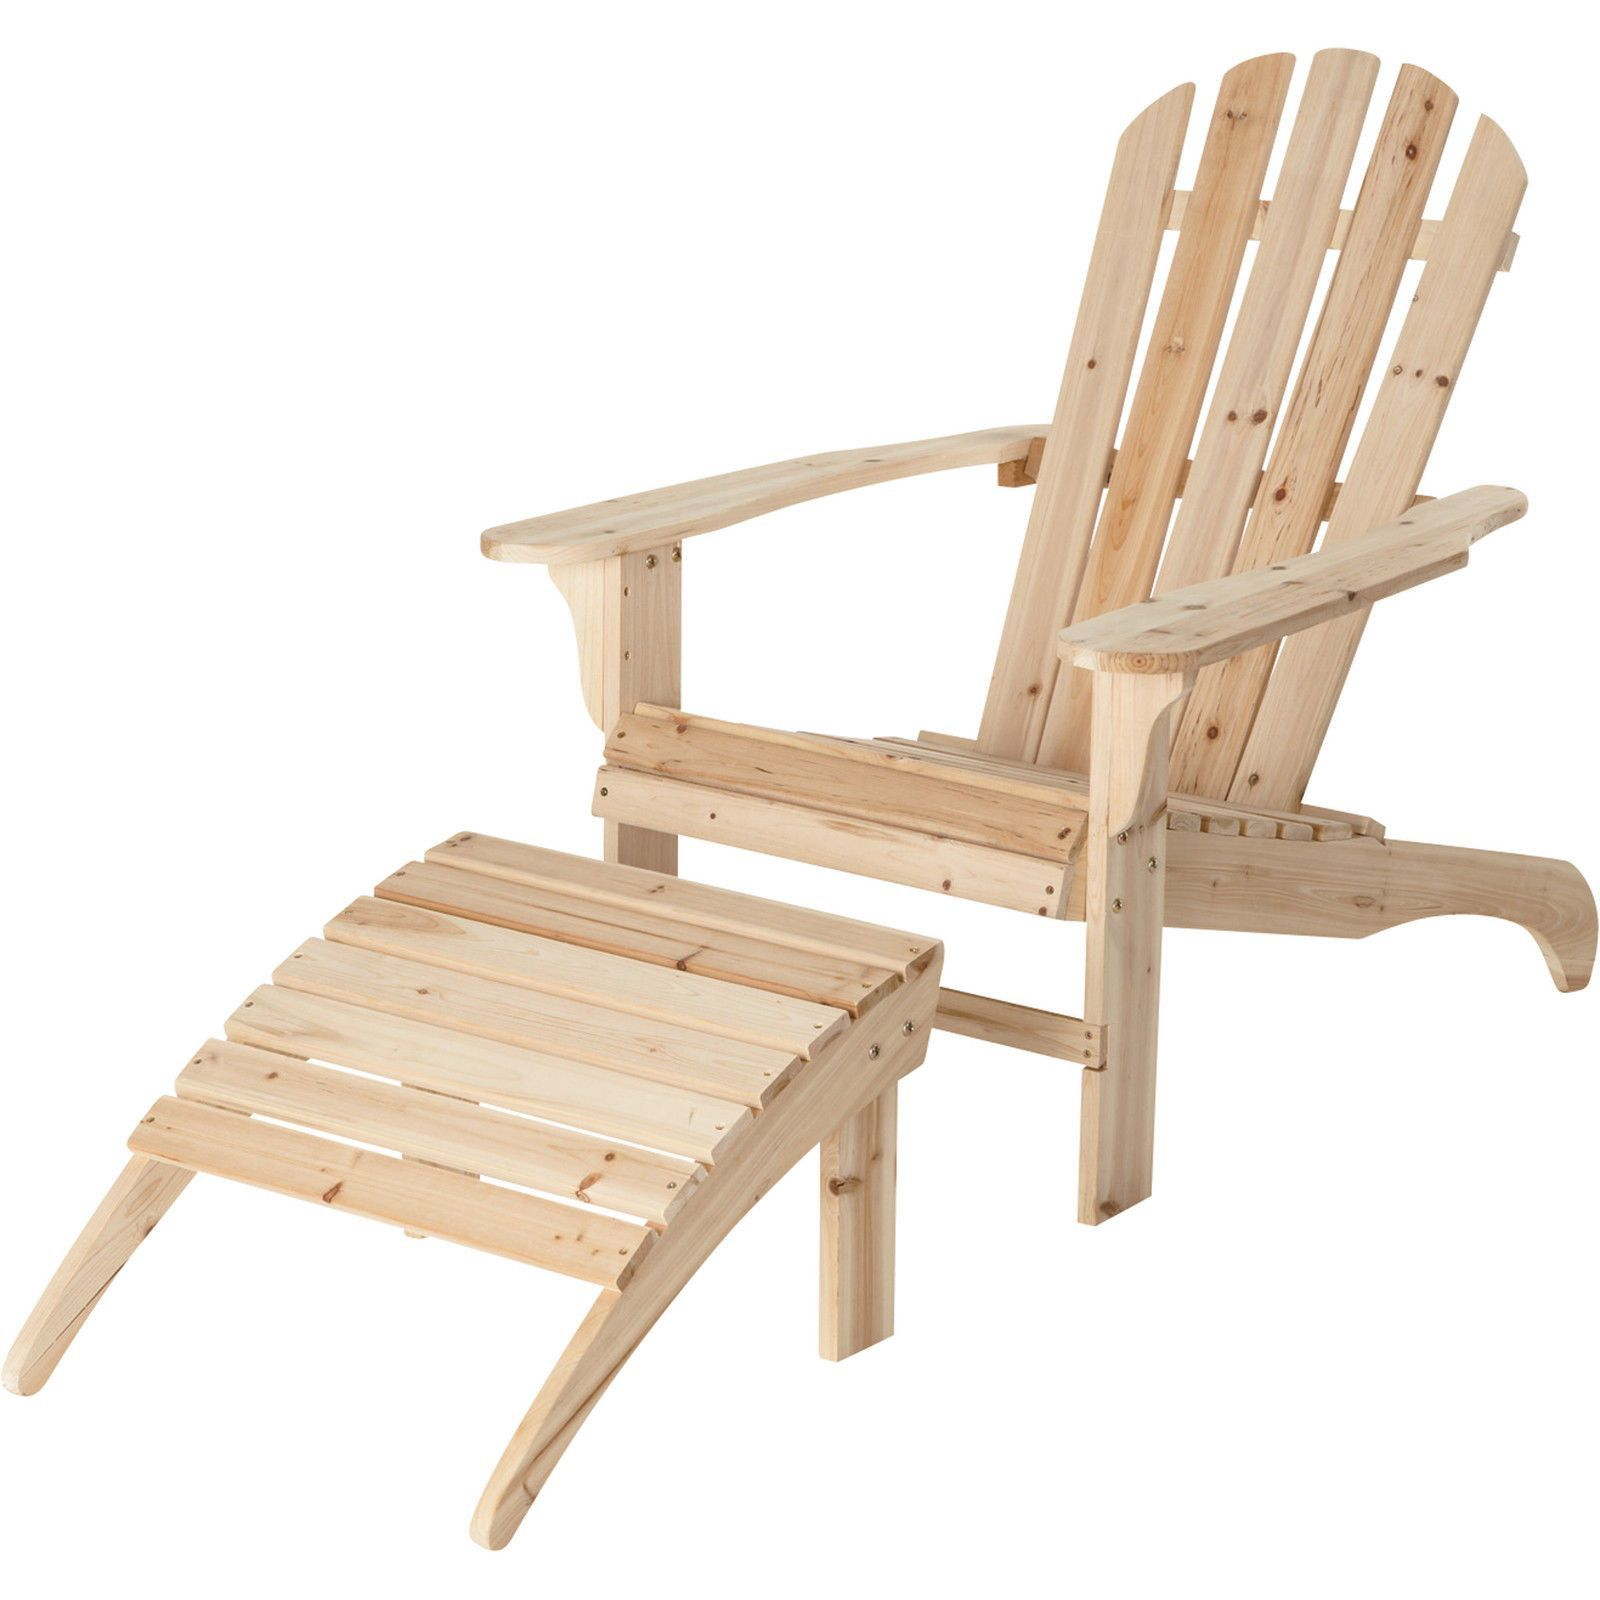 New Cedar Adirondack Chair Or W Ottoman Porch Stained Yard Ottoman Natural Patio Unfinished Wood Painted Resi Adirondack Chair Unfinished Wood Chairs Furniture